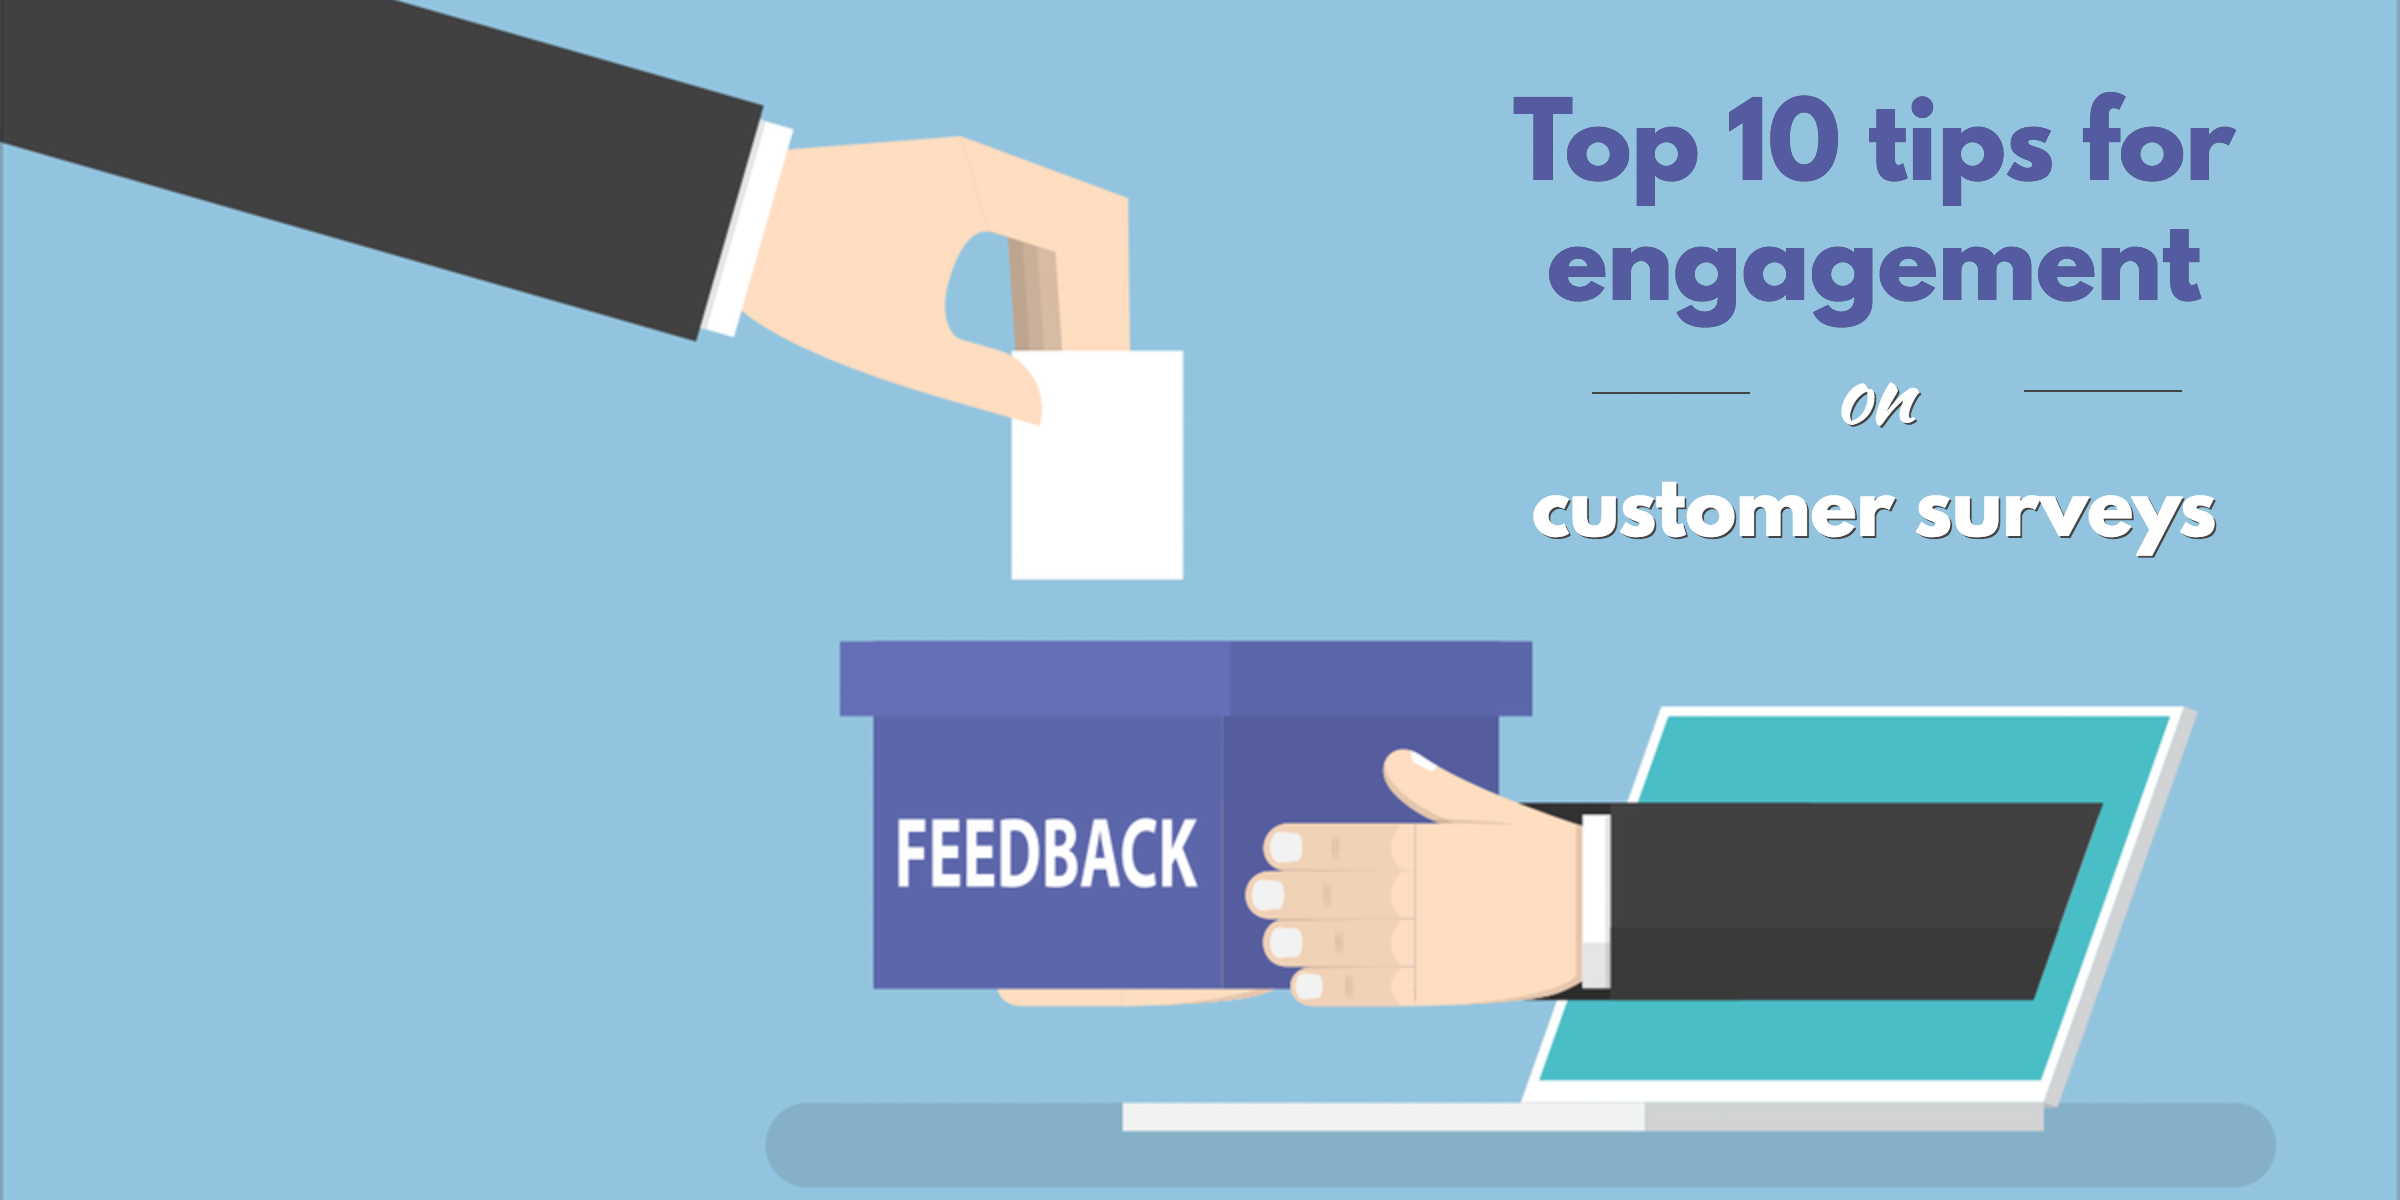 Top 10 tips for engagement on customer surveys